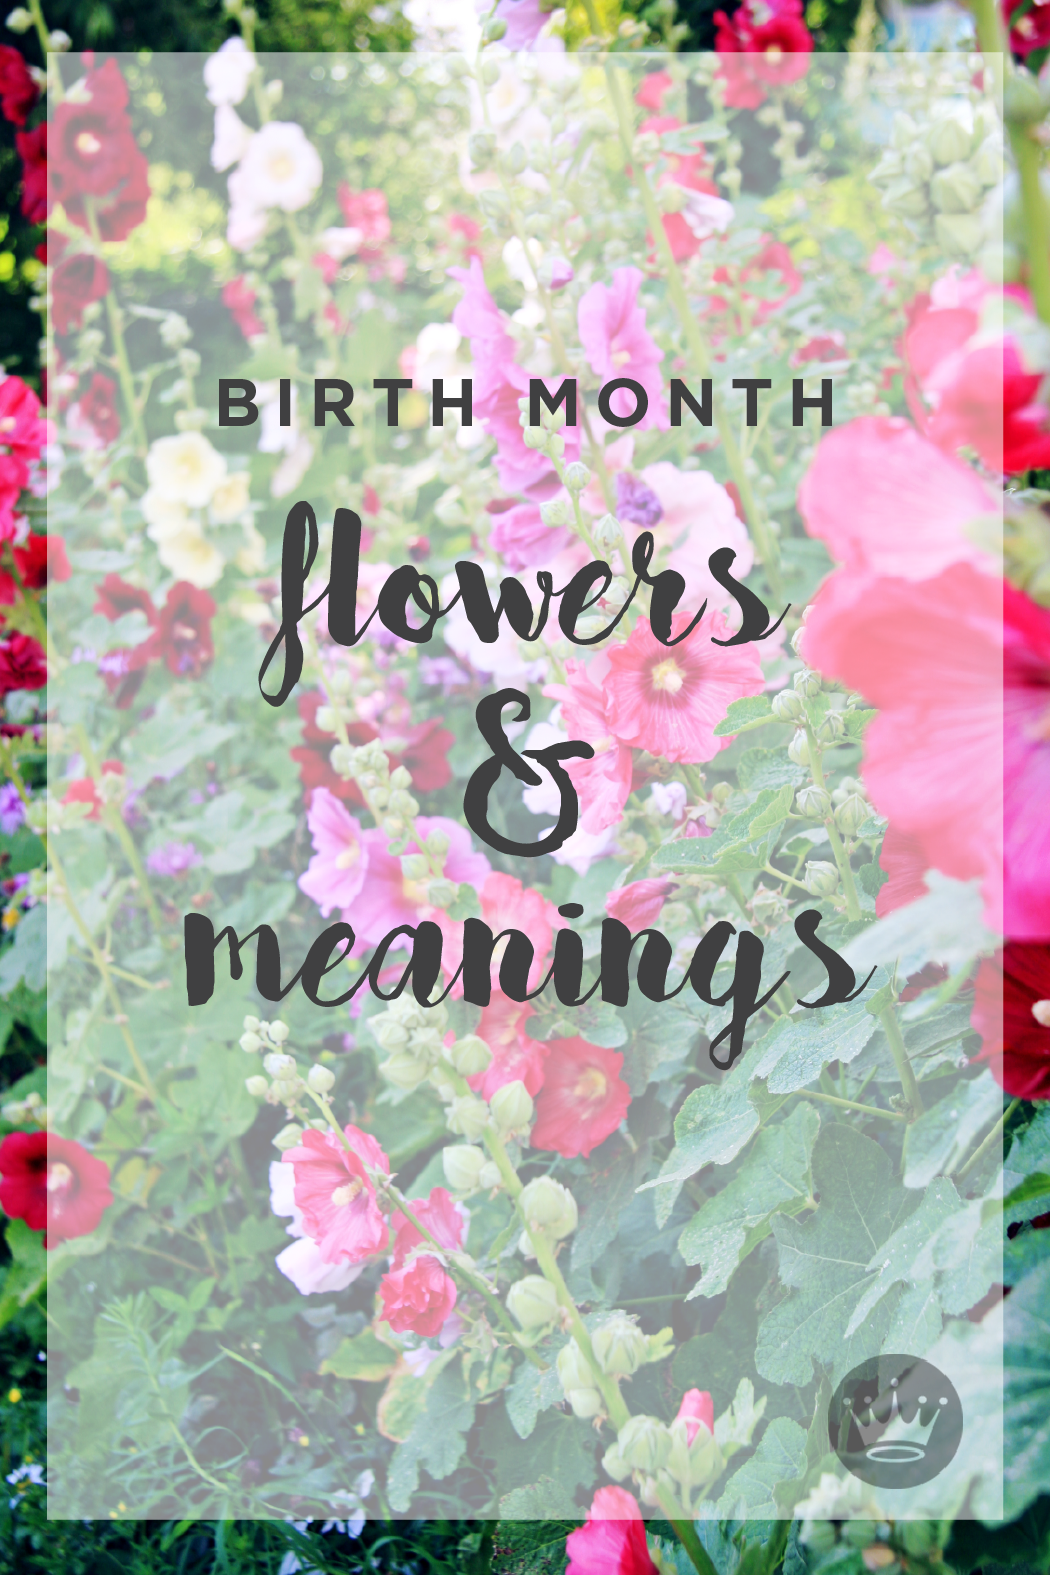 Birth flowers & meanings Birth flowers, Birth month